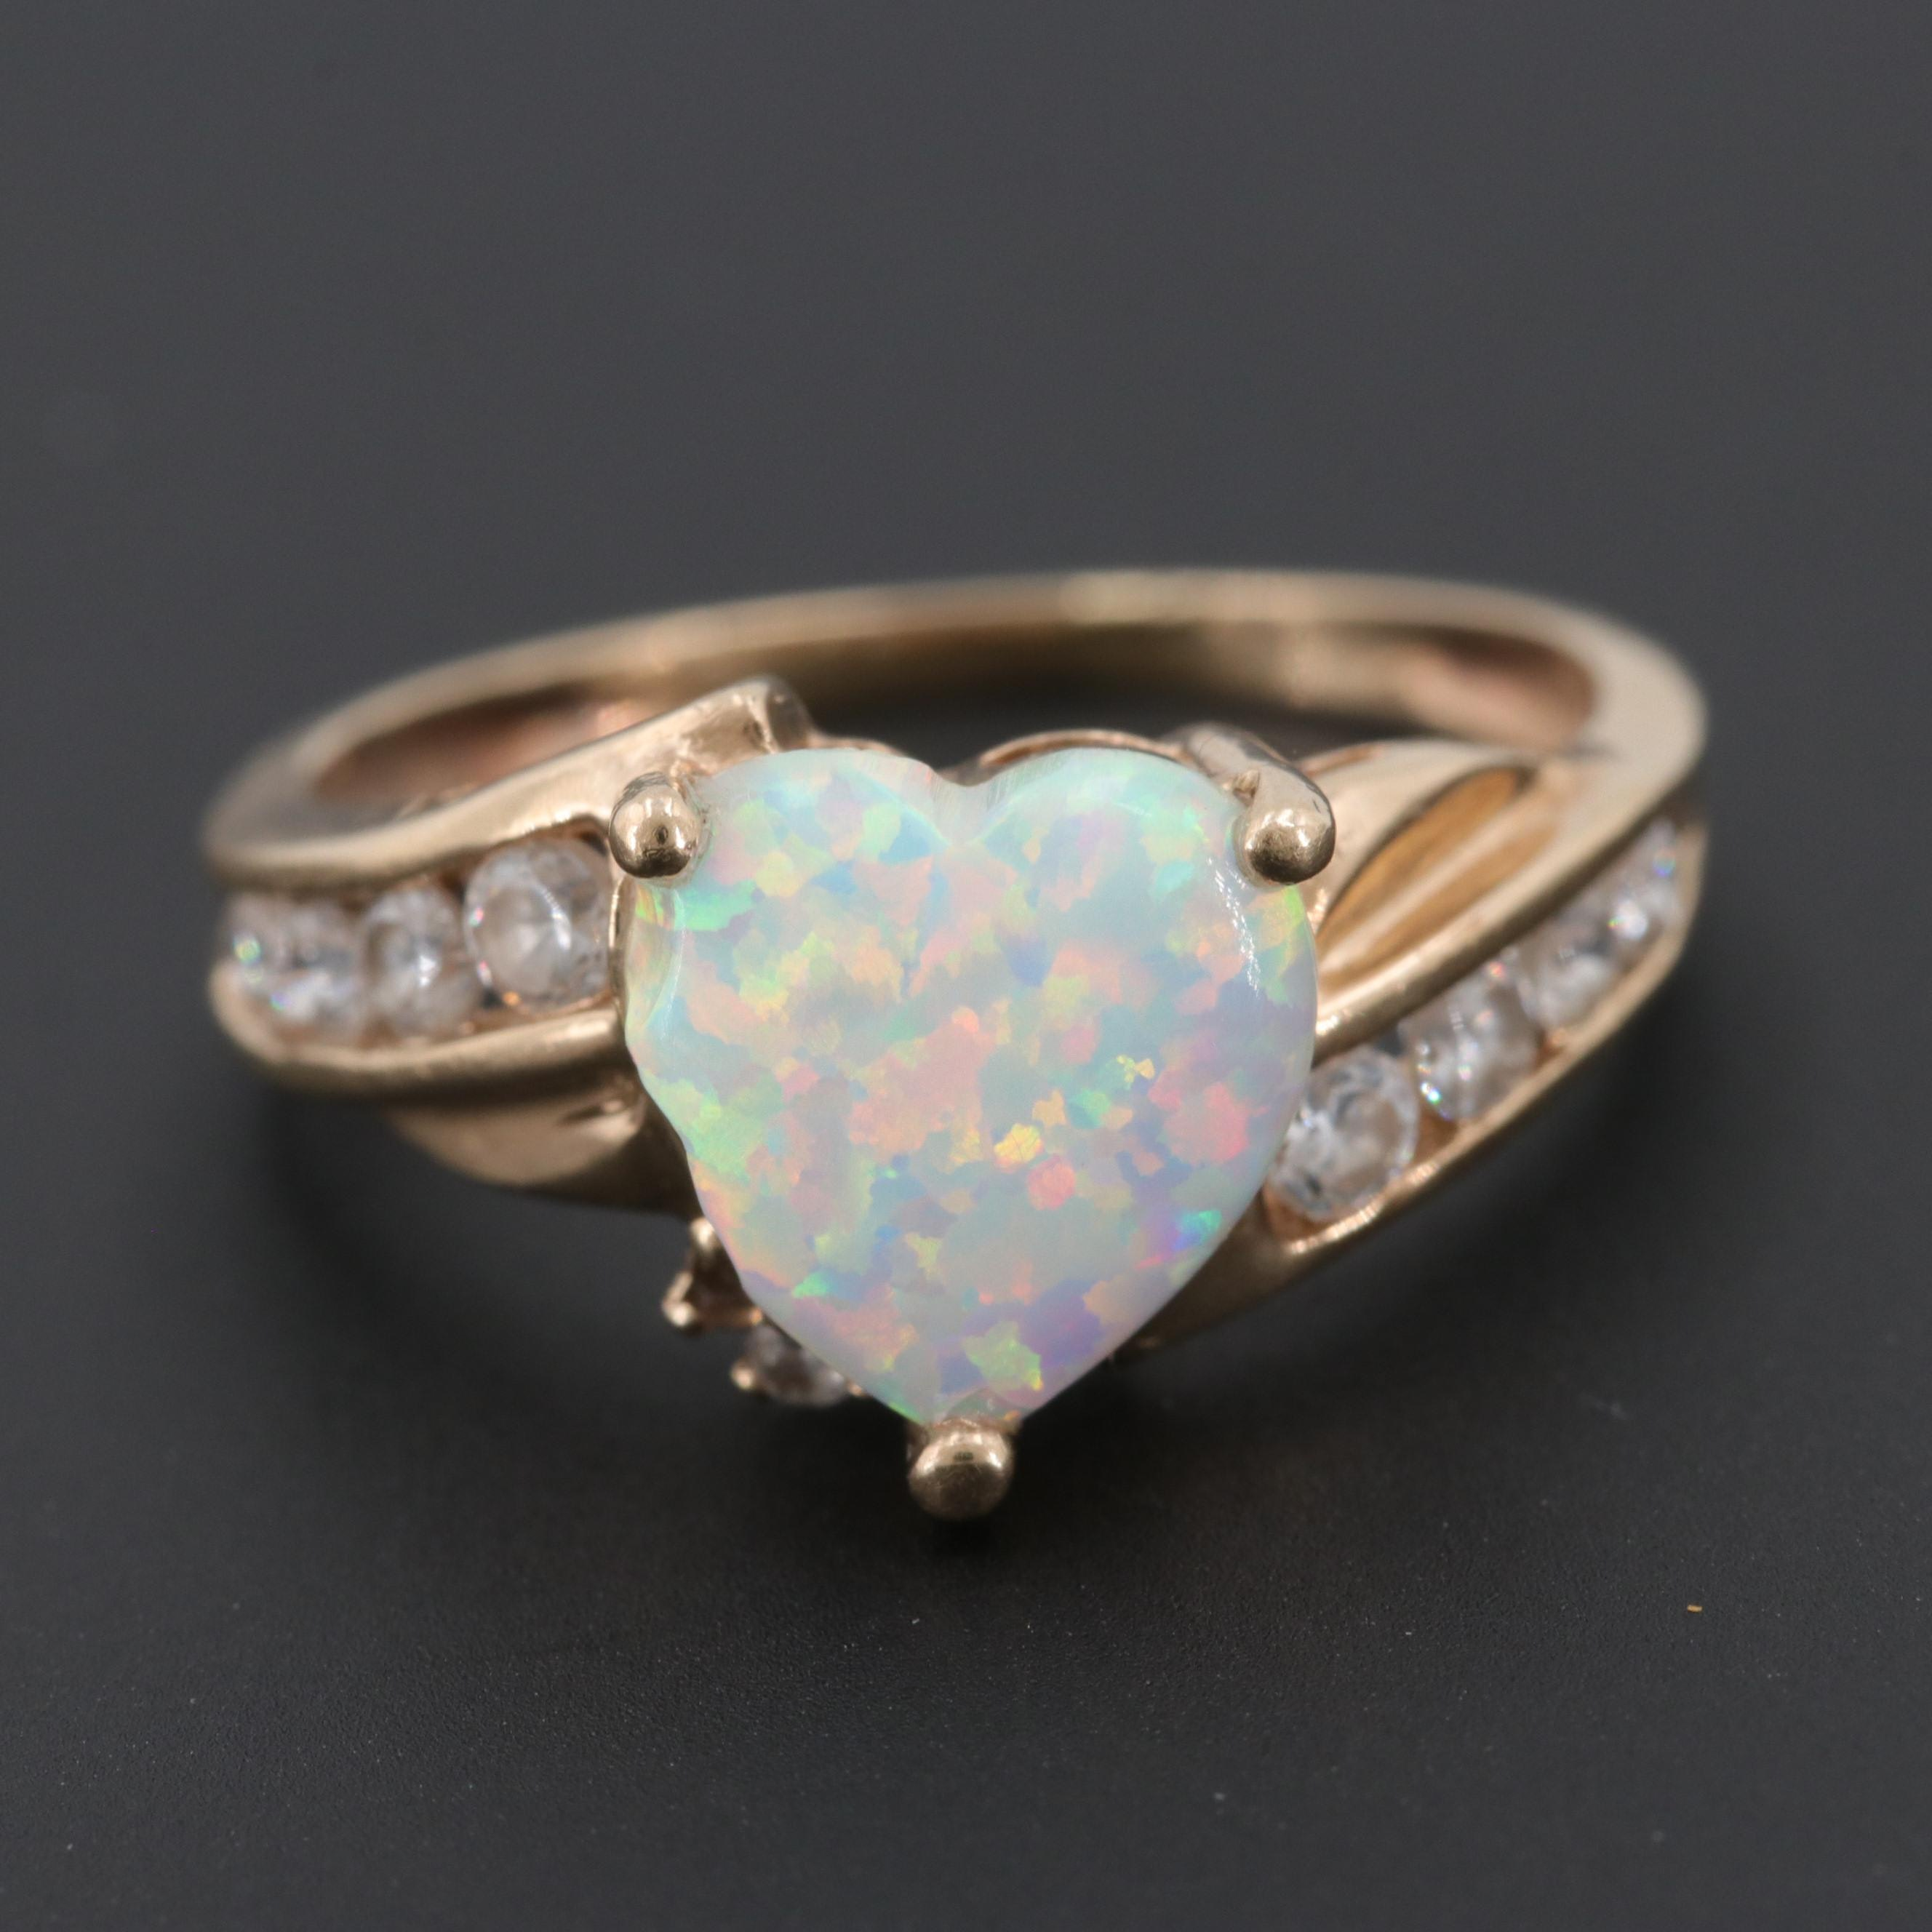 10K Yellow Gold Synthetic Opal and Cubic Zirconia Ring